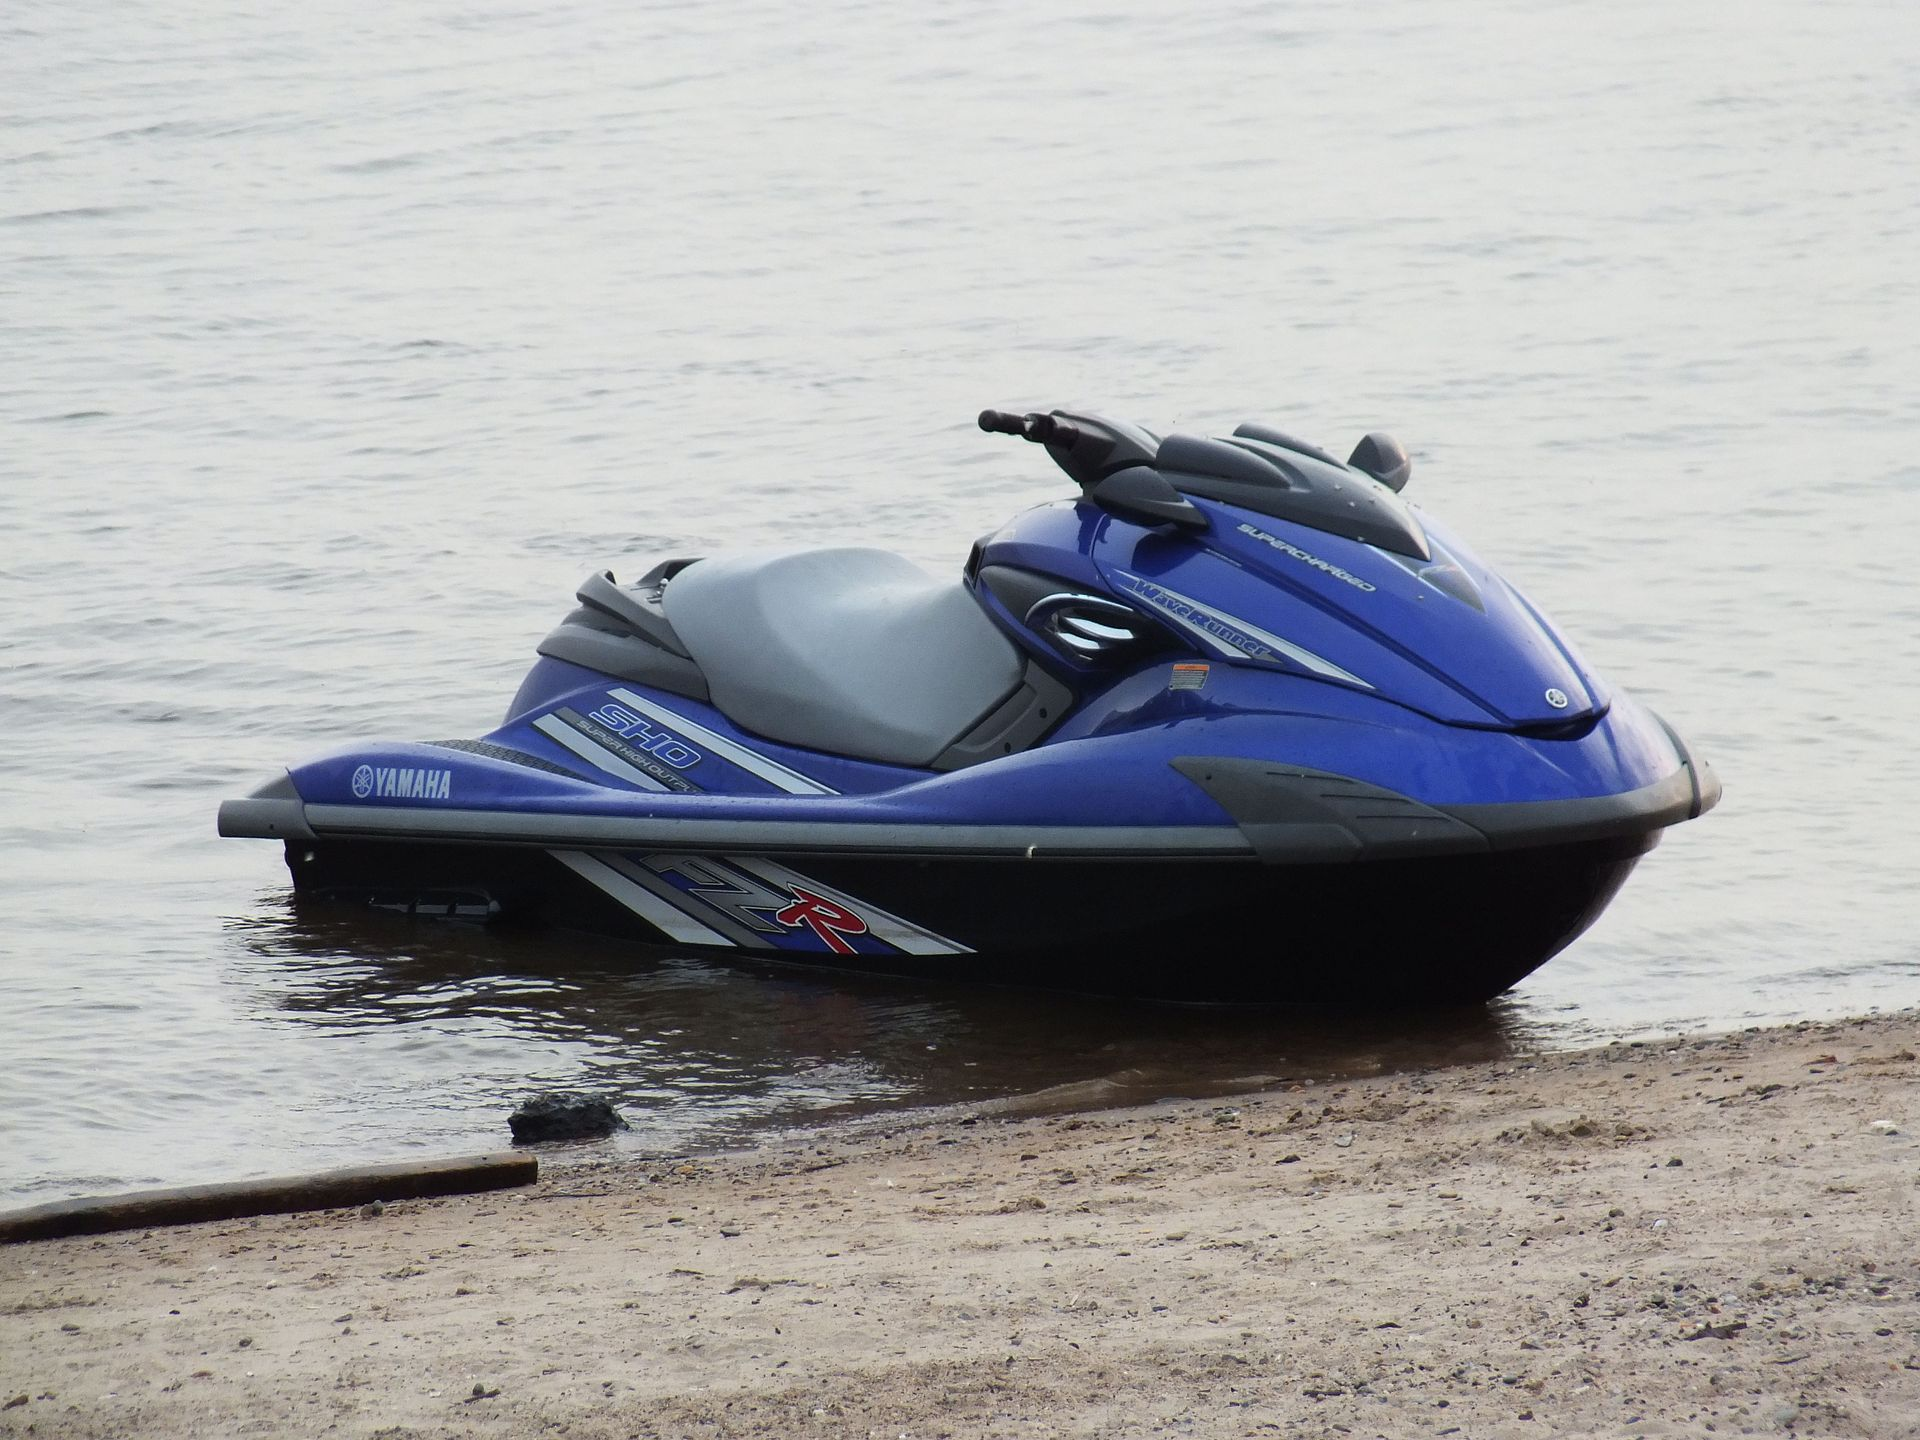 Polaris Jet Ski >> Moto d'acqua - Wikipedia